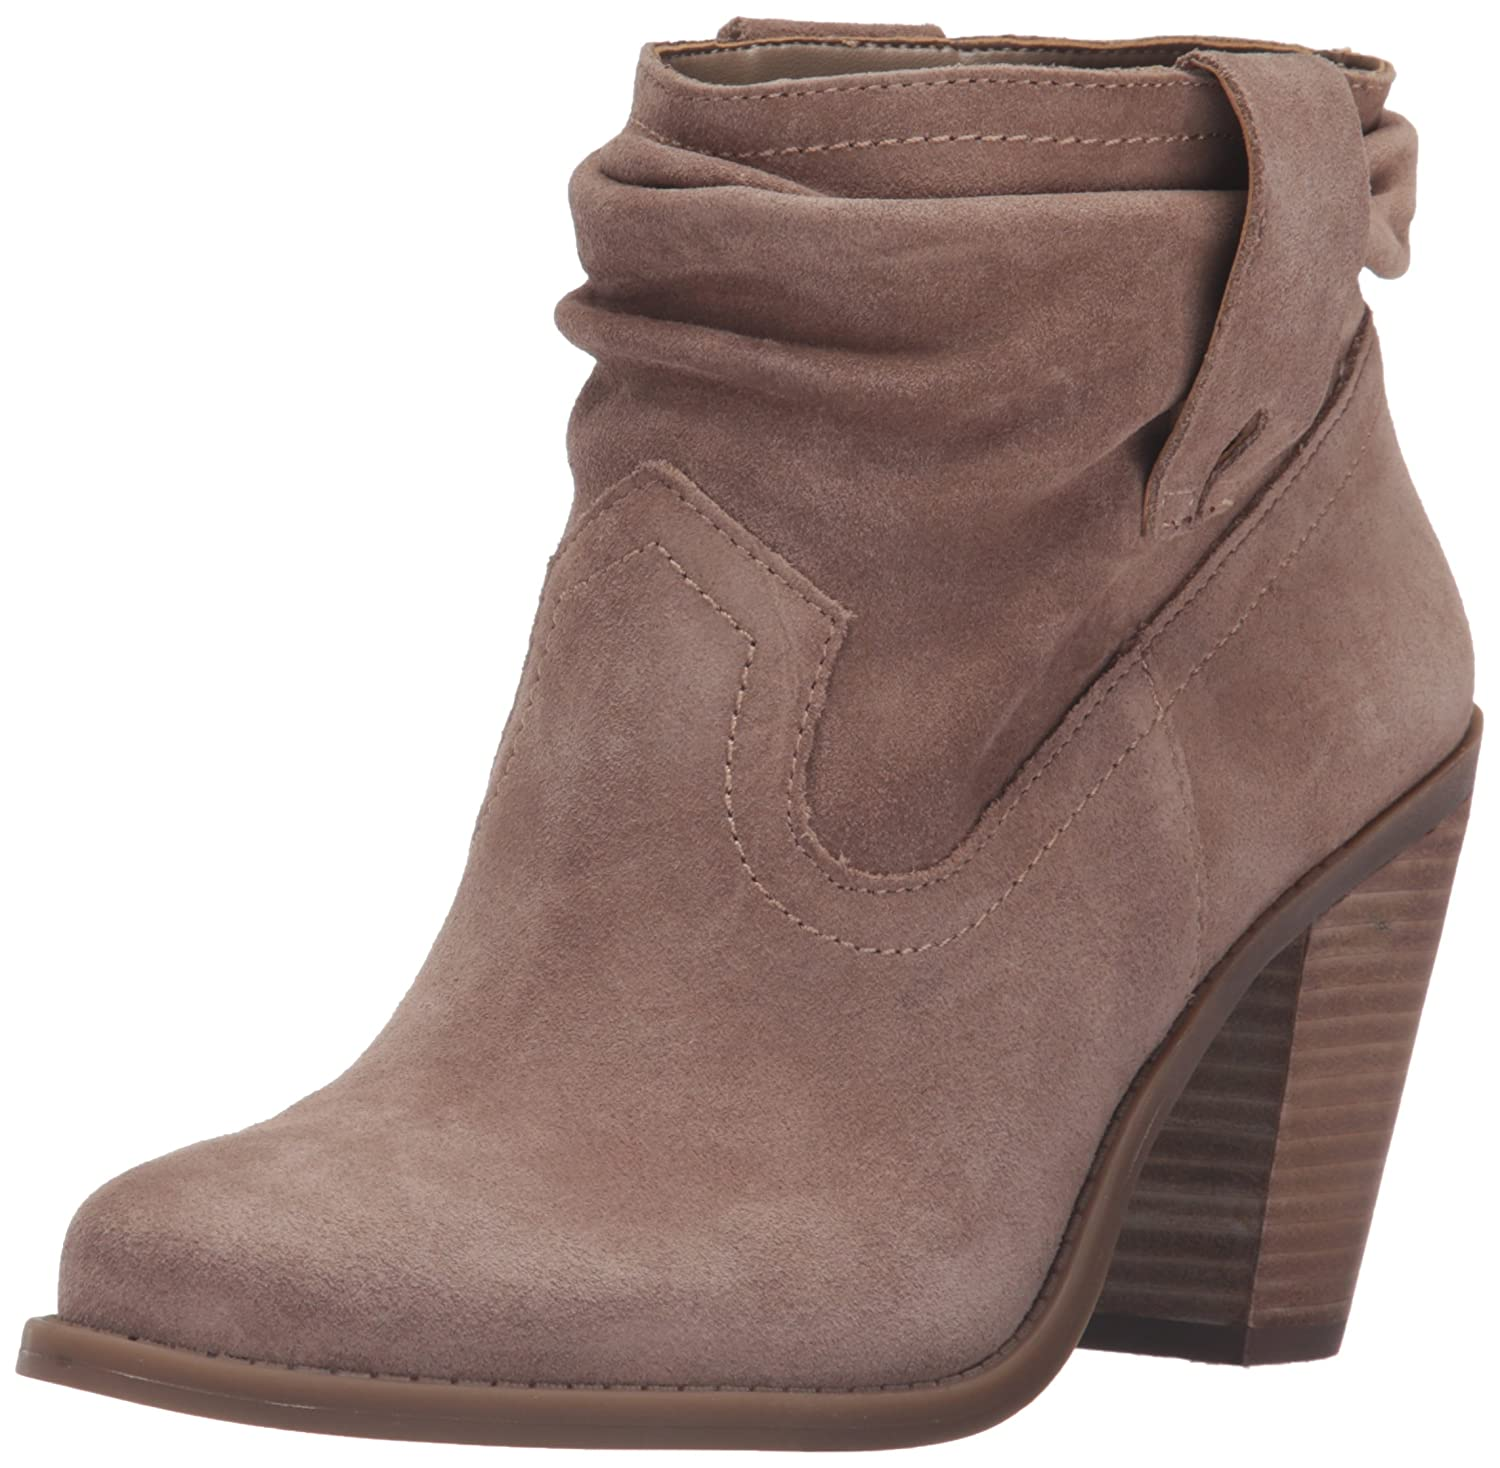 Jessica Simpson Women's Chantie Ankle Bootie B01DMWFQL0 6.5 B(M) US|Totally Taupe